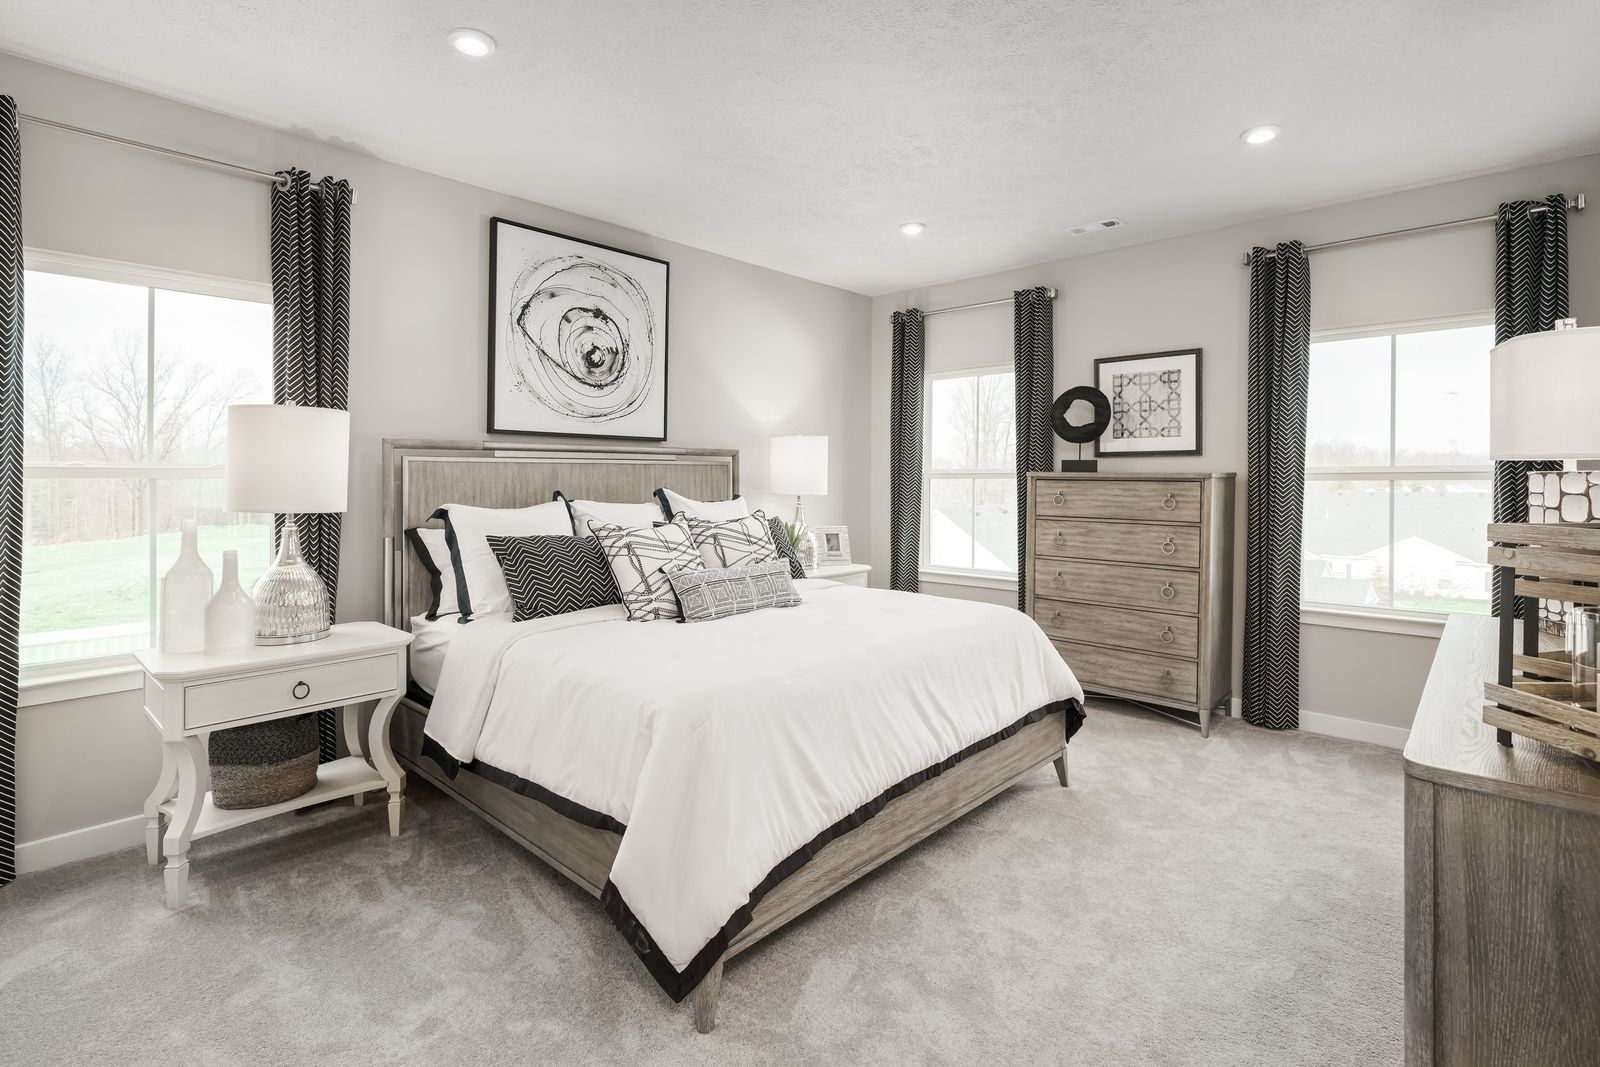 Bedroom featured in the Wexford Rear Garage By Ryan Homes in Akron, OH